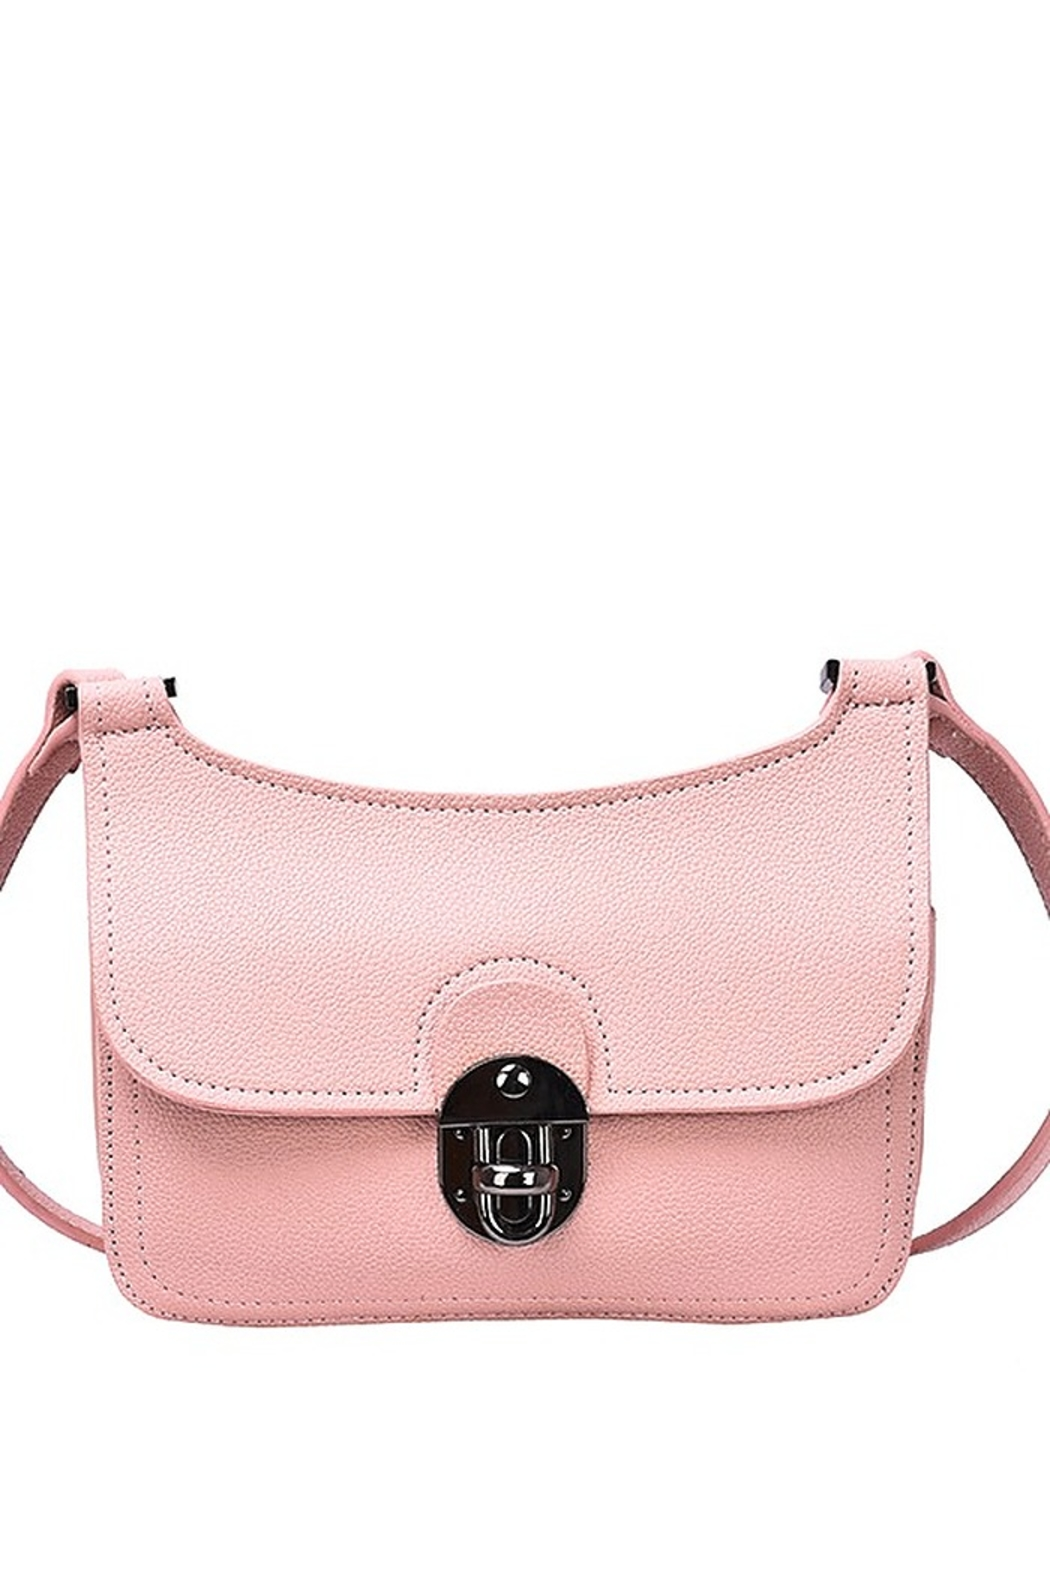 Mellow World two-way crossbody and belt bag - Front Cropped Image